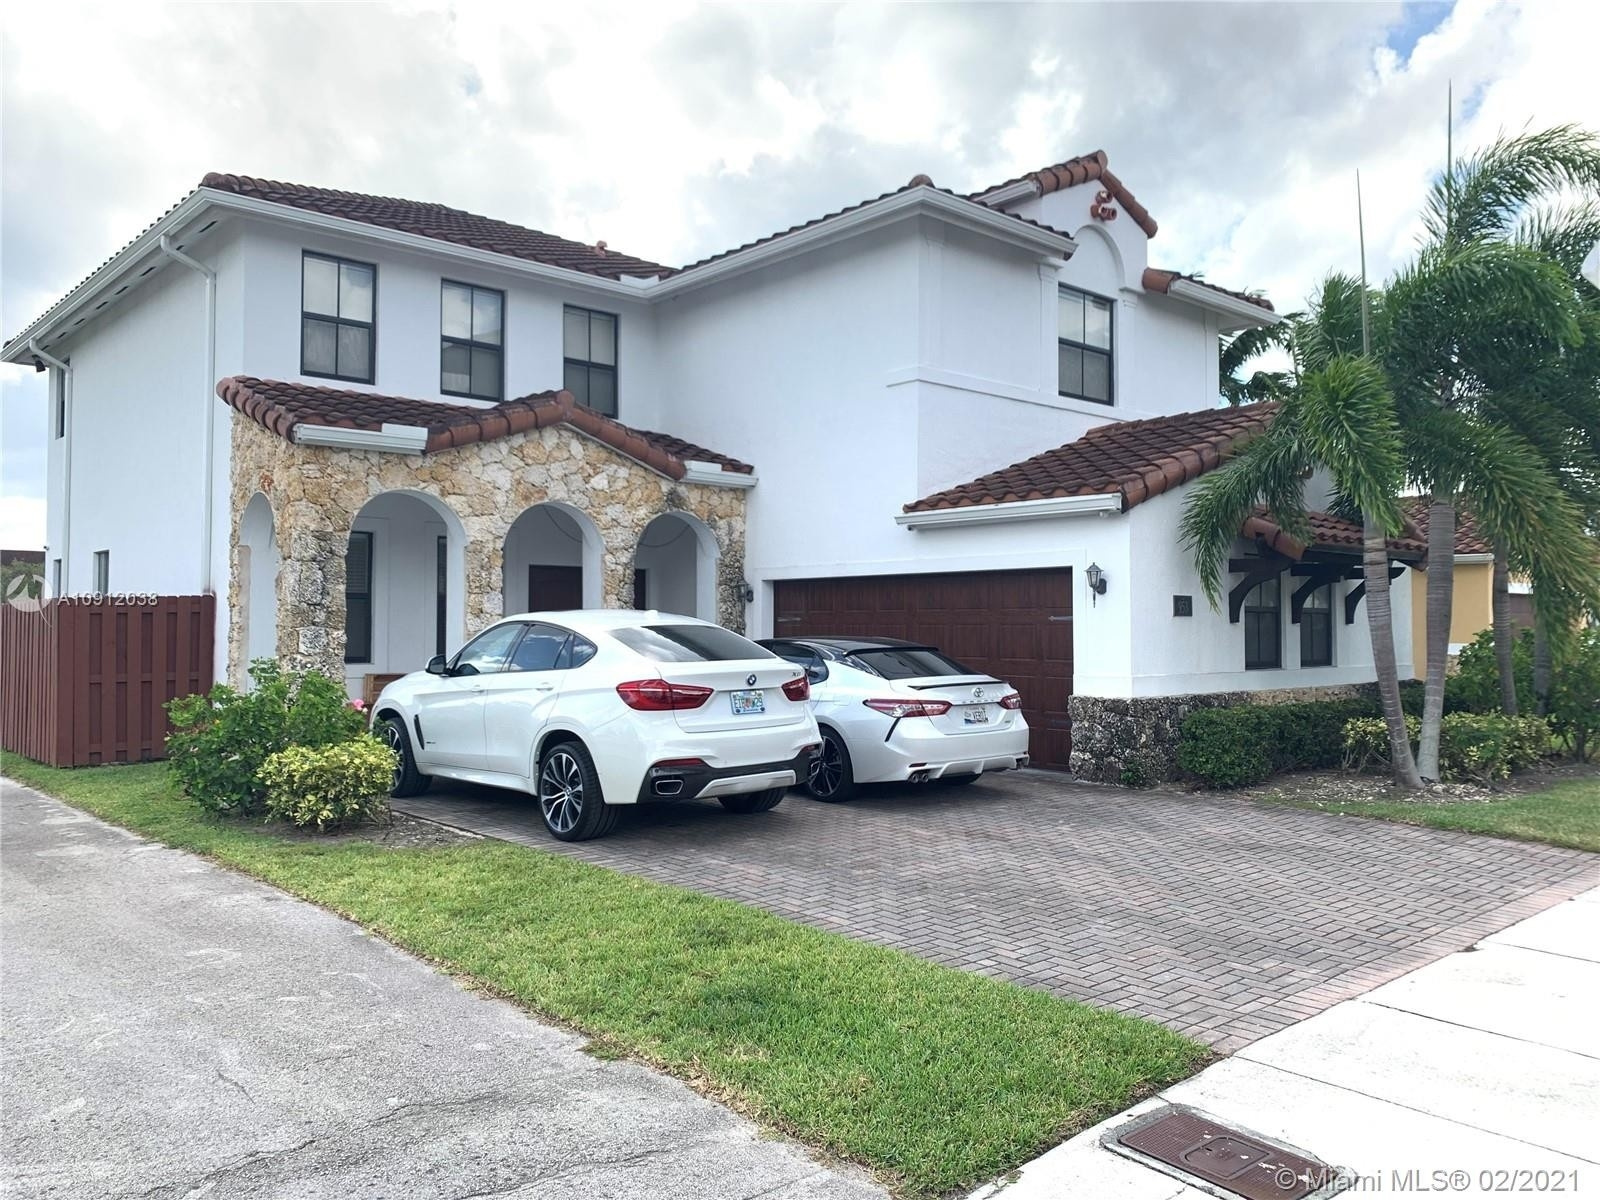 Single Family Home for Sale at Fontainebleau Park West, Miami, FL 33172